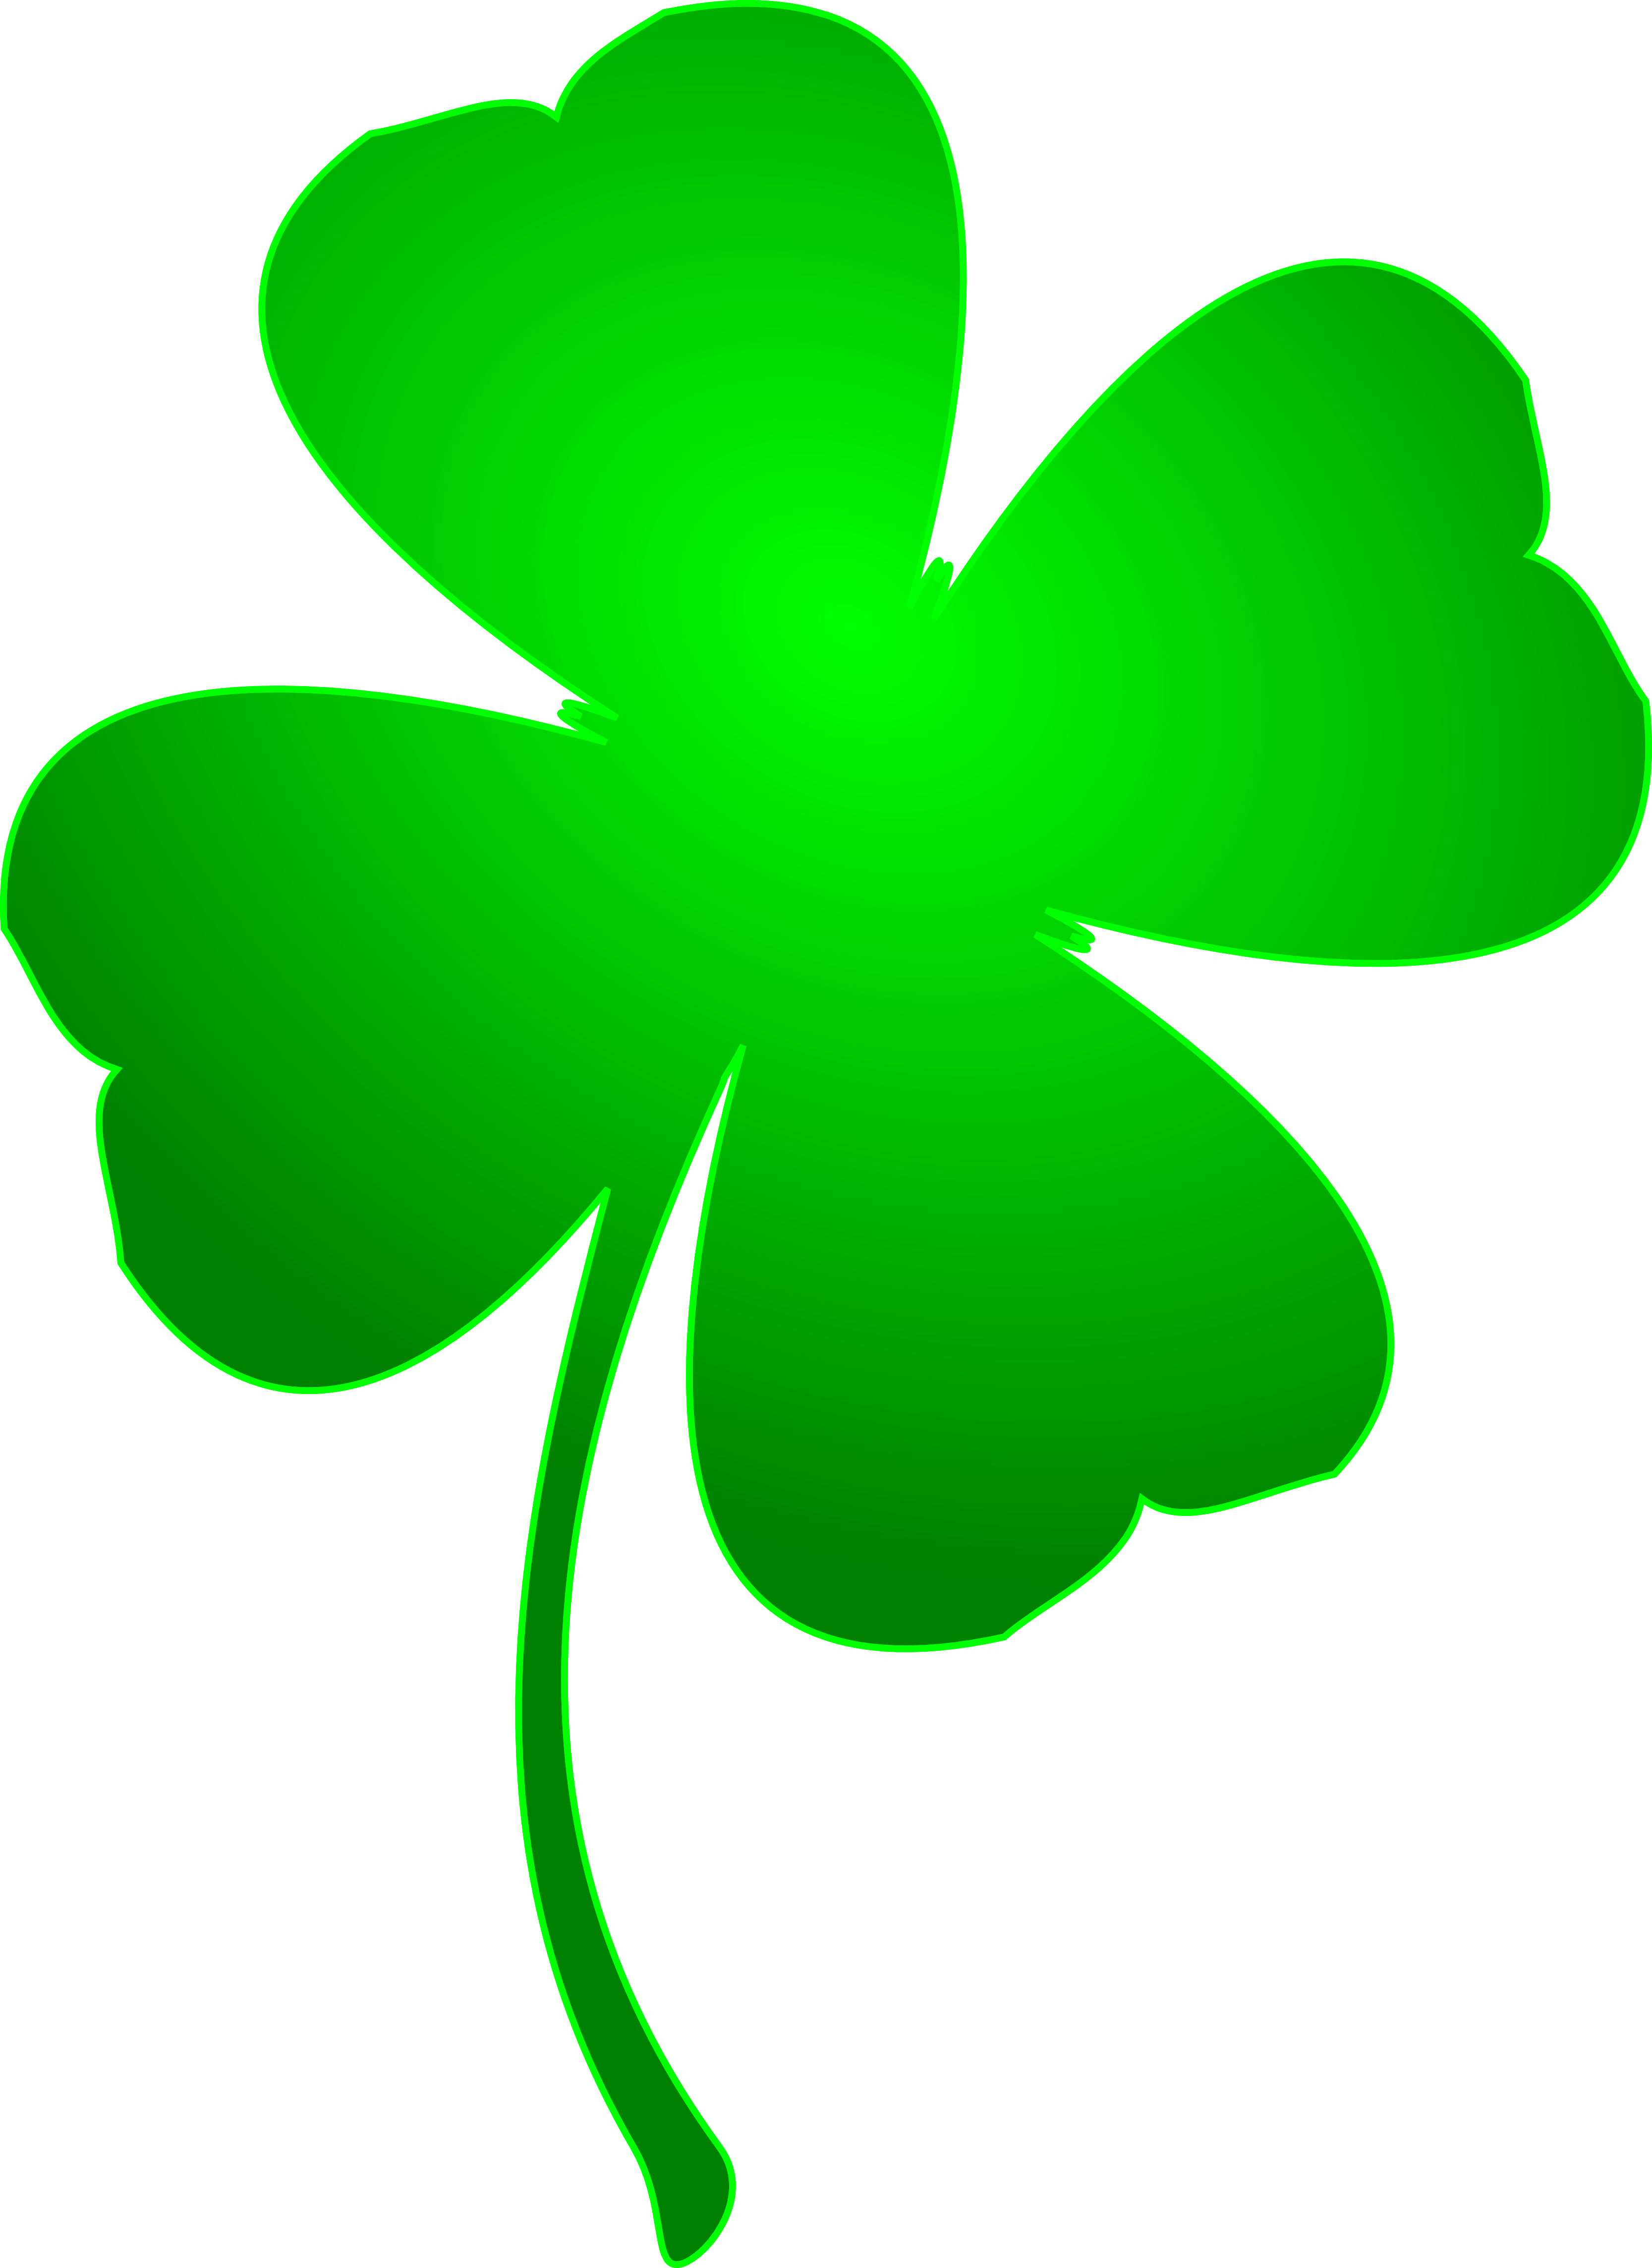 Clover Hd PNG Image